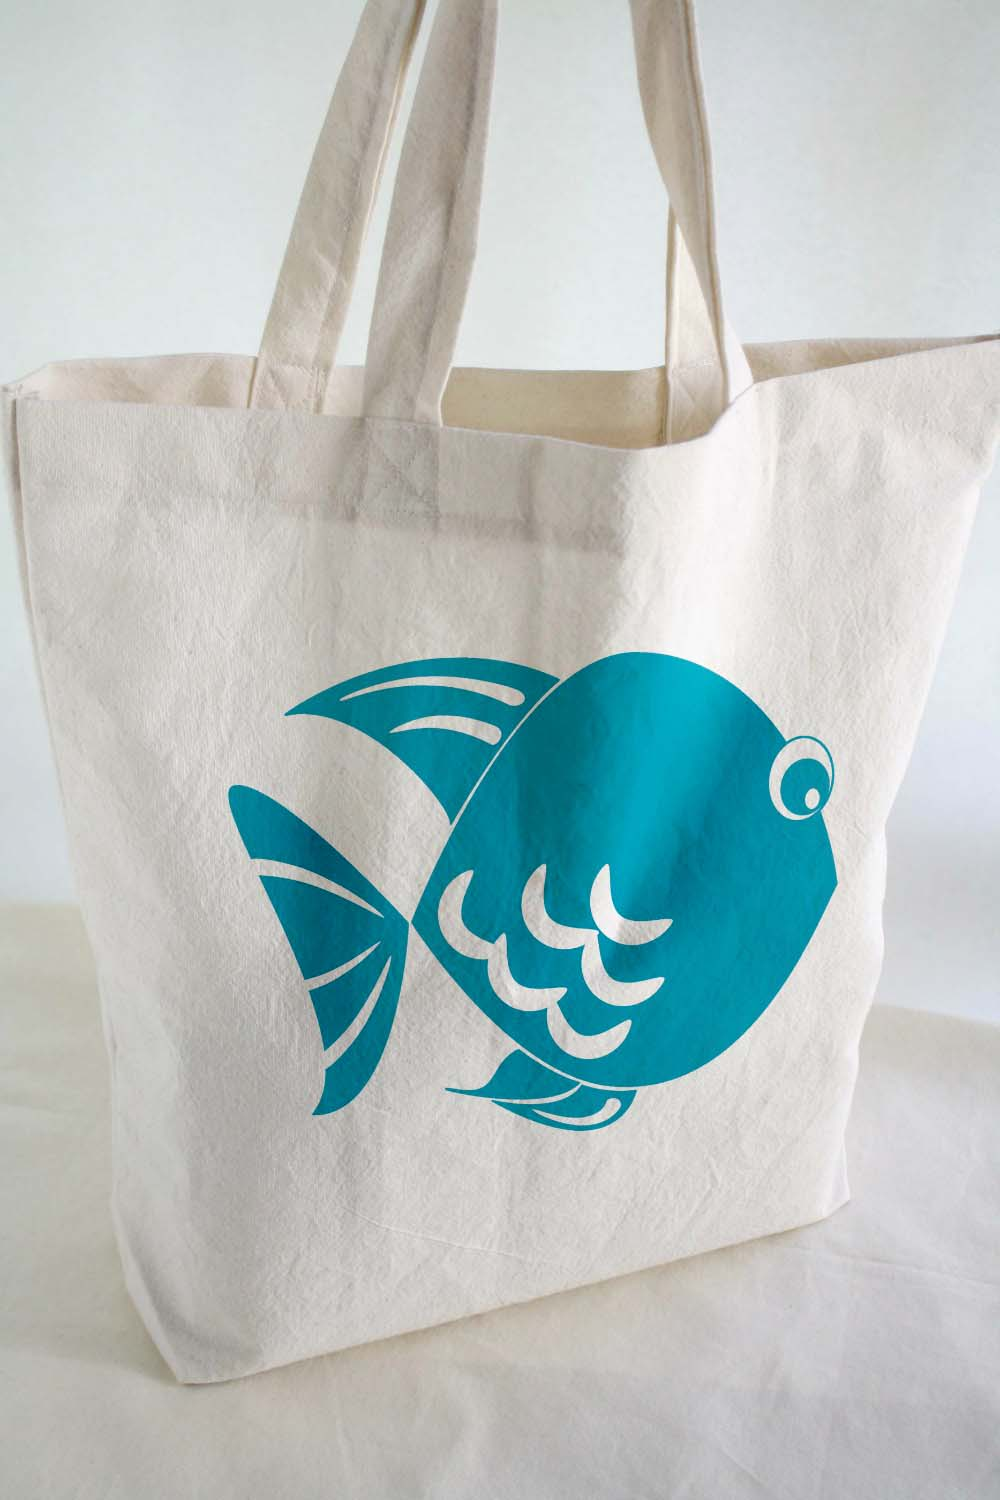 Cotton TOTE BAG - Beach Tote - Cotton Tote Bag With Hand Printed ...